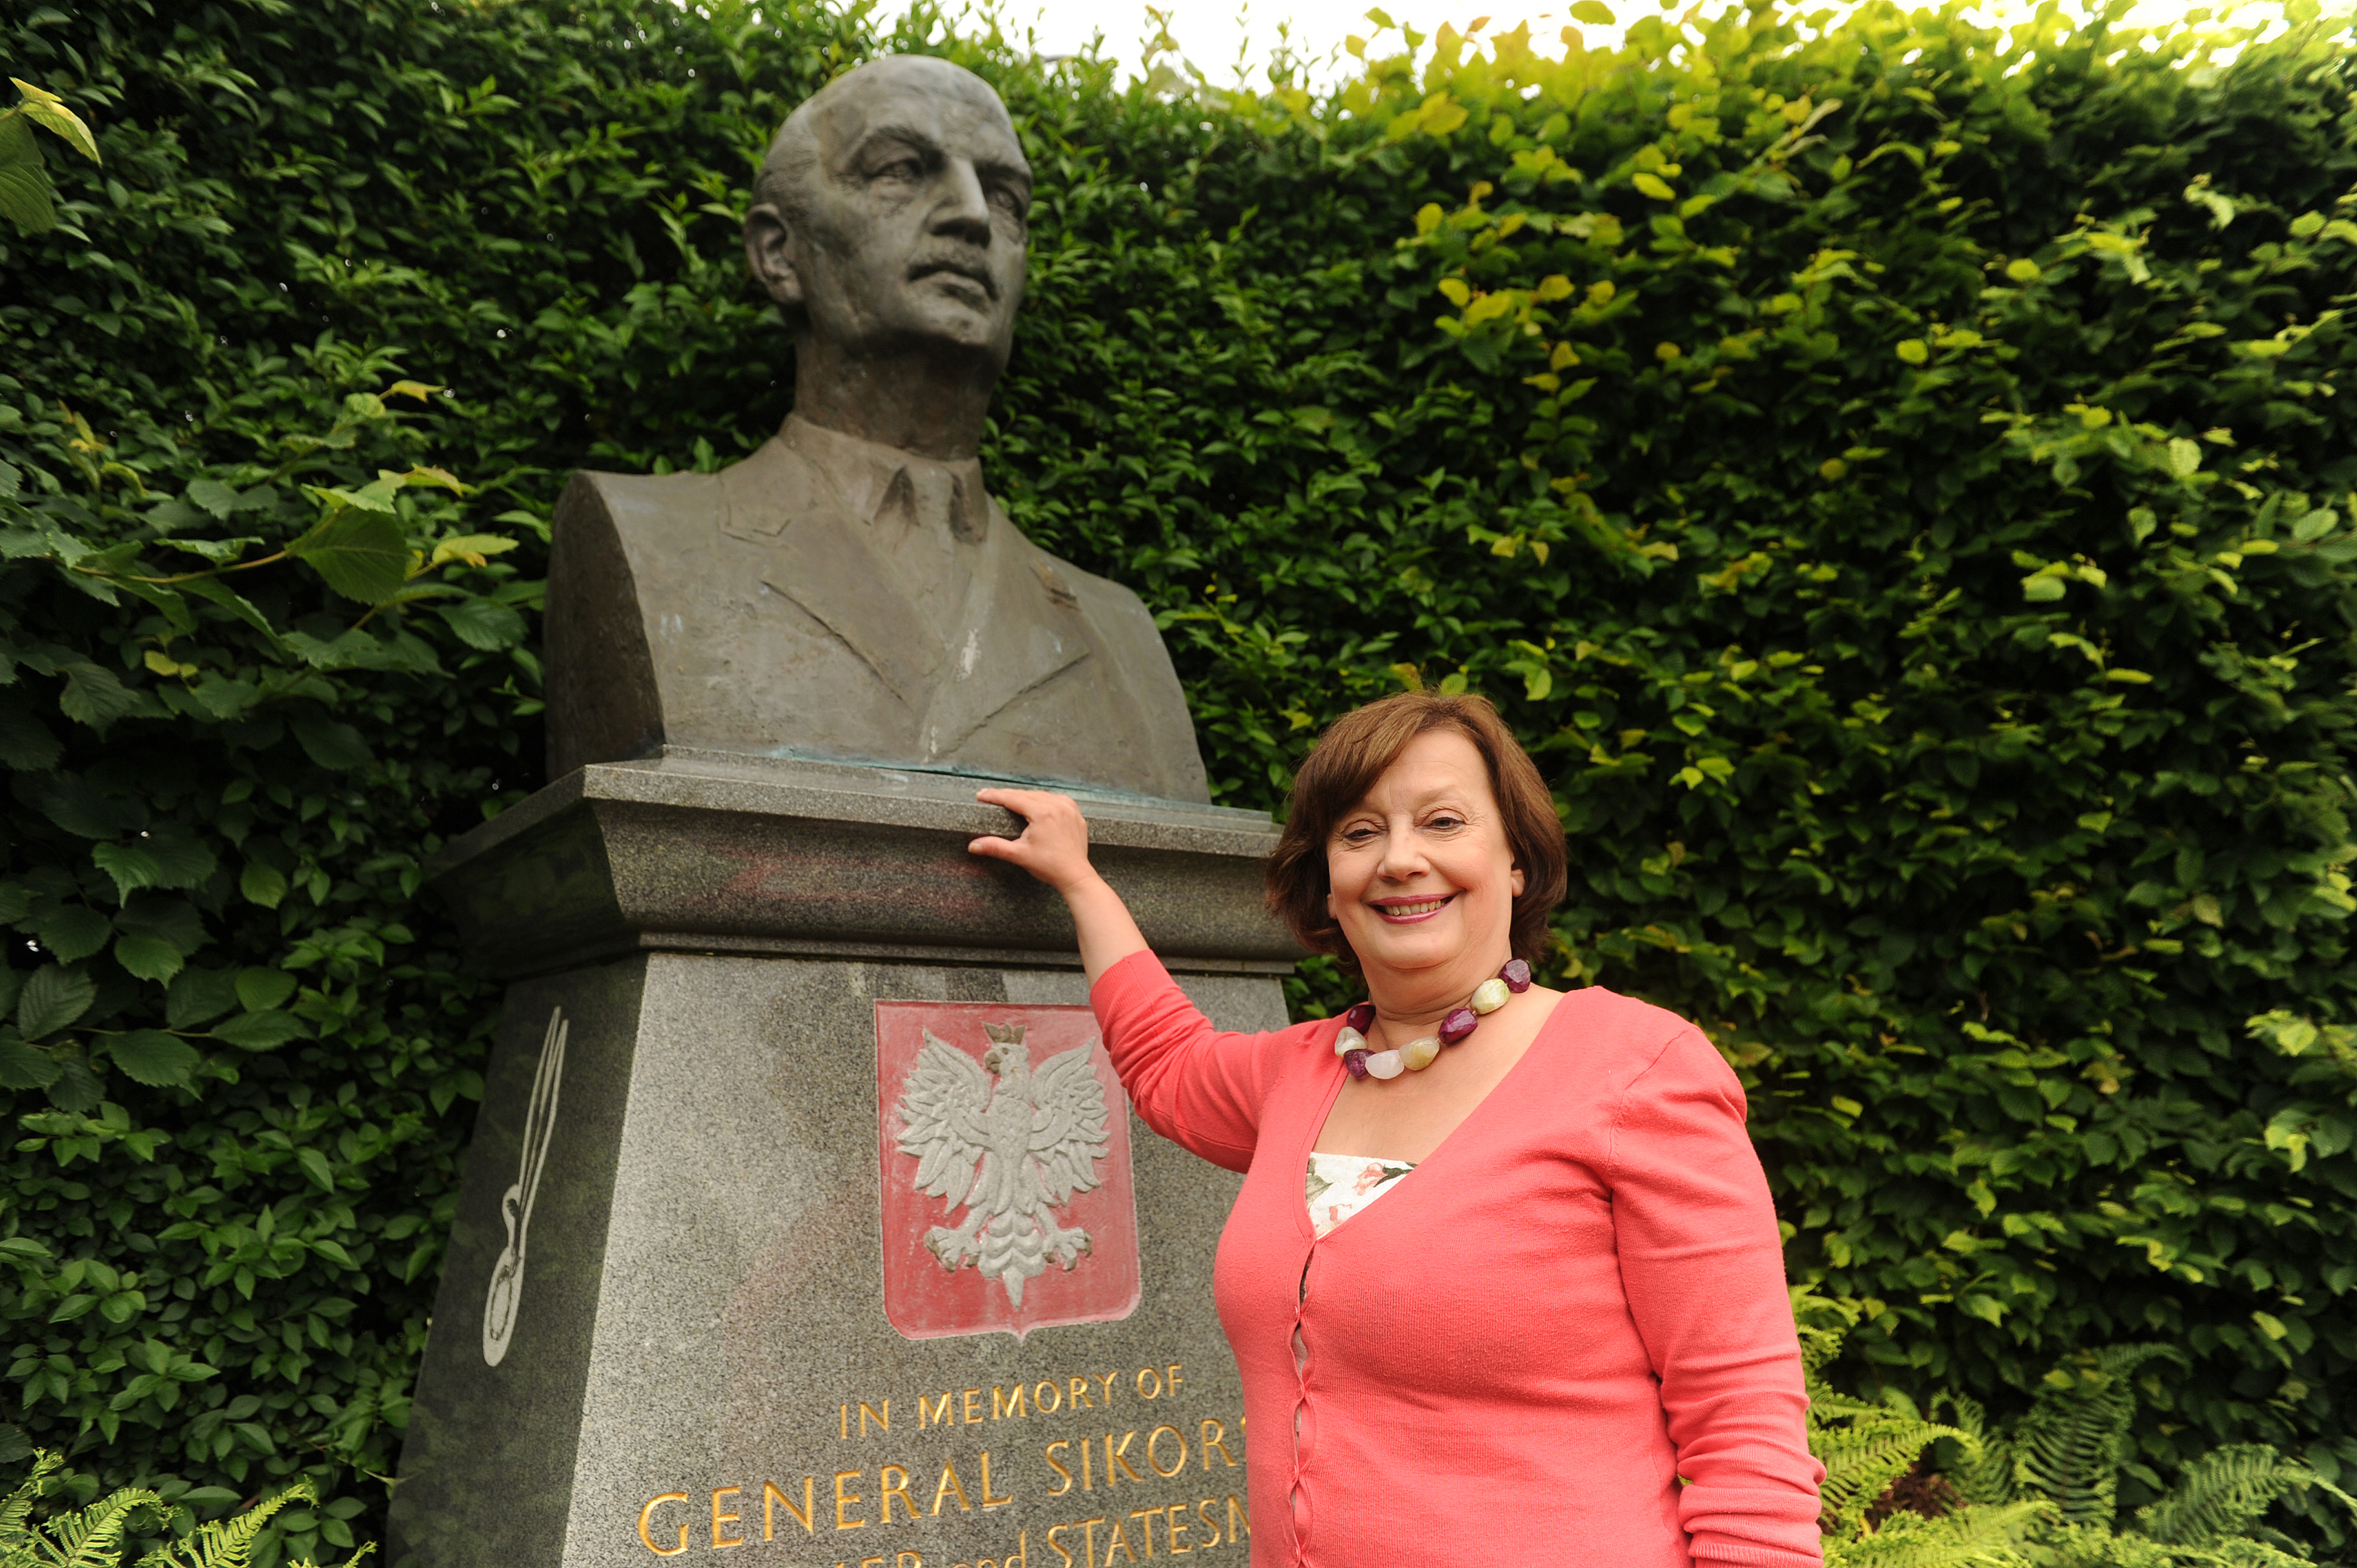 Polish woman Violeta Llendo next to the statue of WWII Polish General Sikorski at Kinburn Park, St Andrews